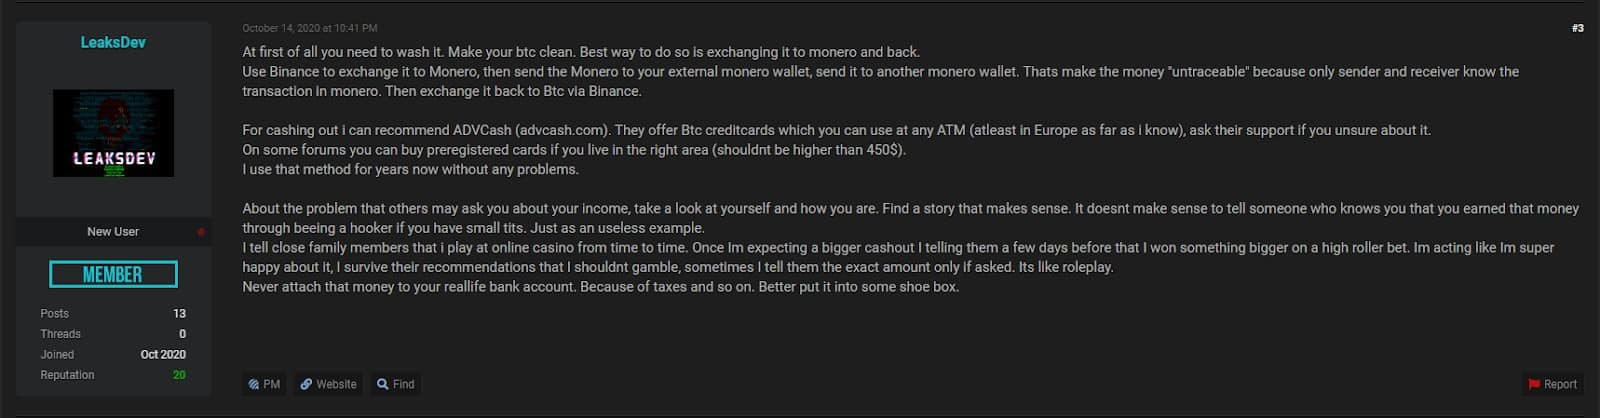 Cybercriminal forum users discuss the Bitcoin cleaning methodologies